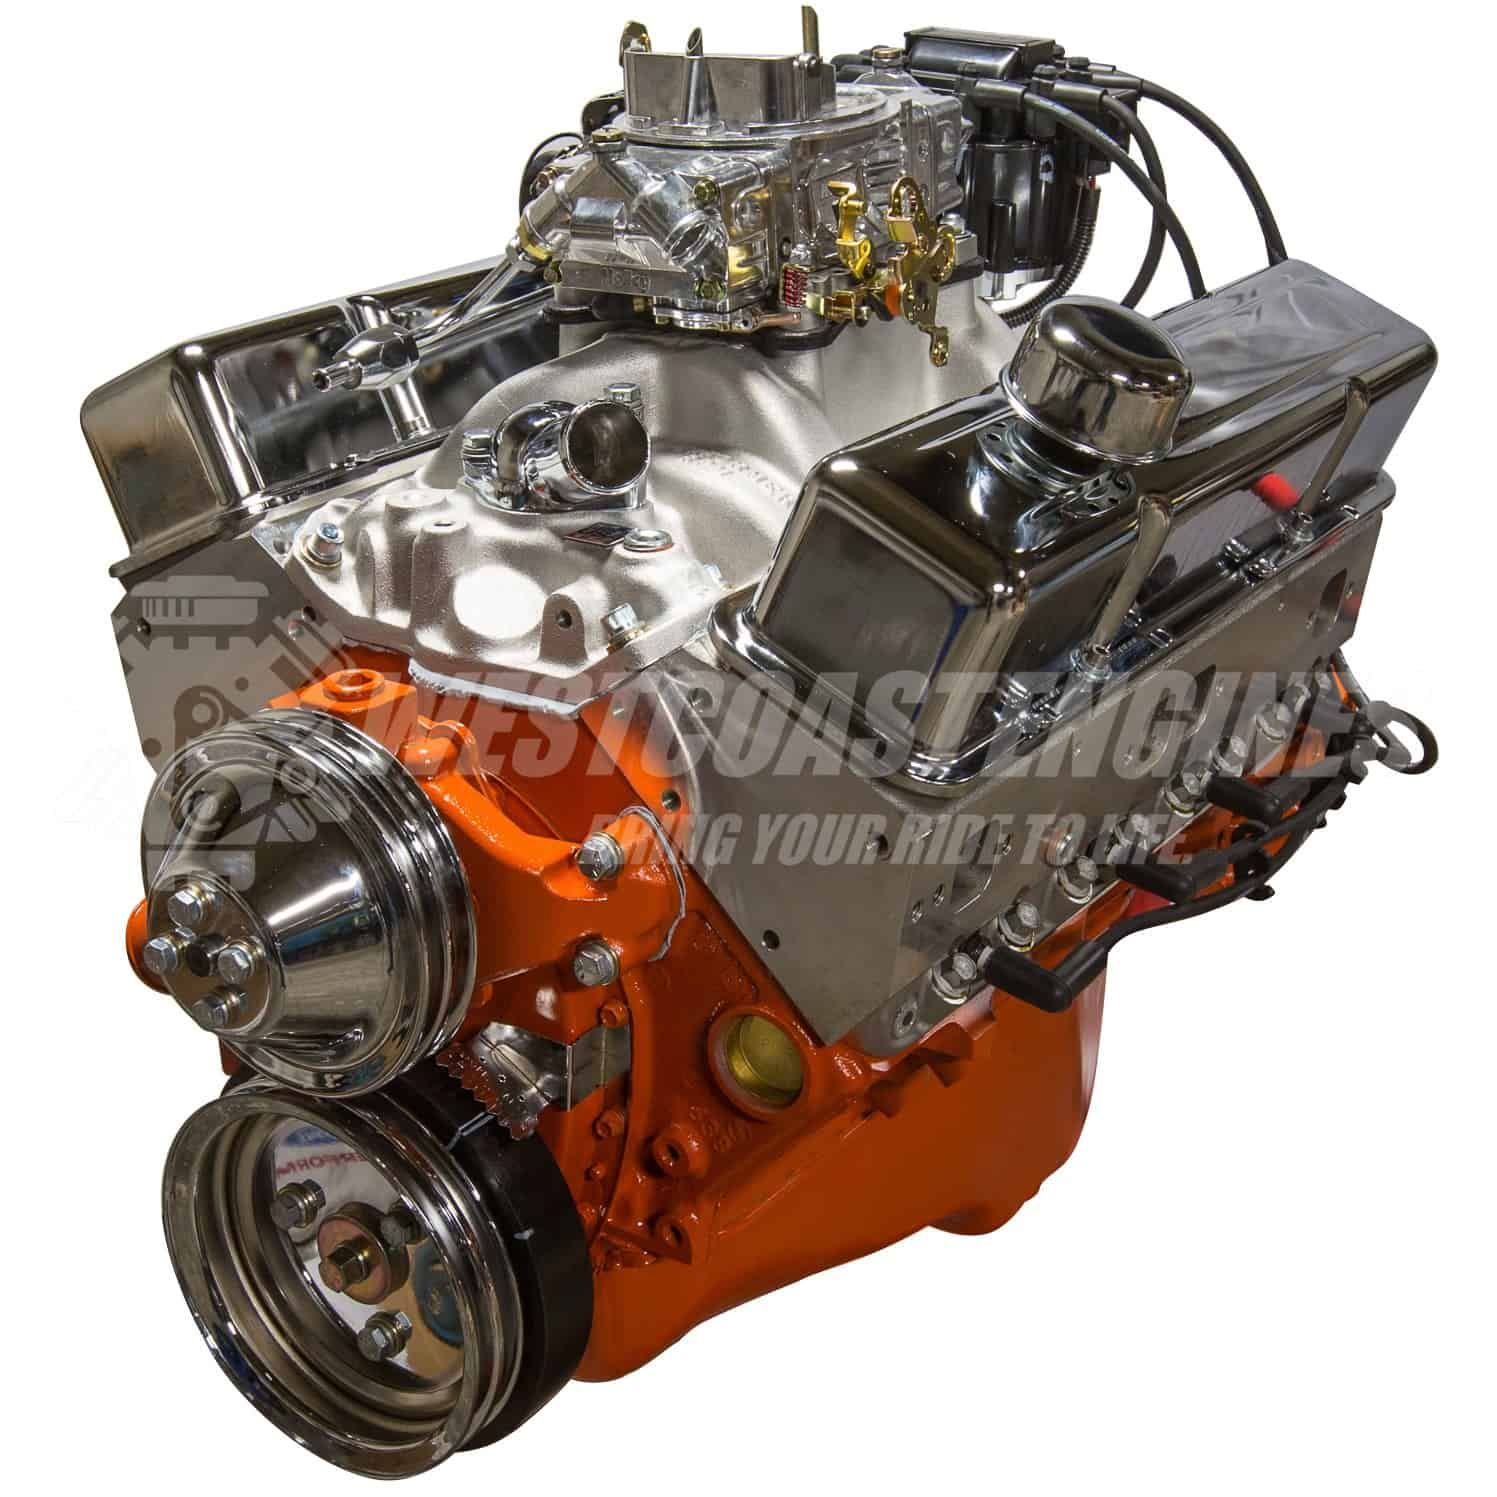 383 Stroker Crate Engine Engineering Chevy Crate Engines